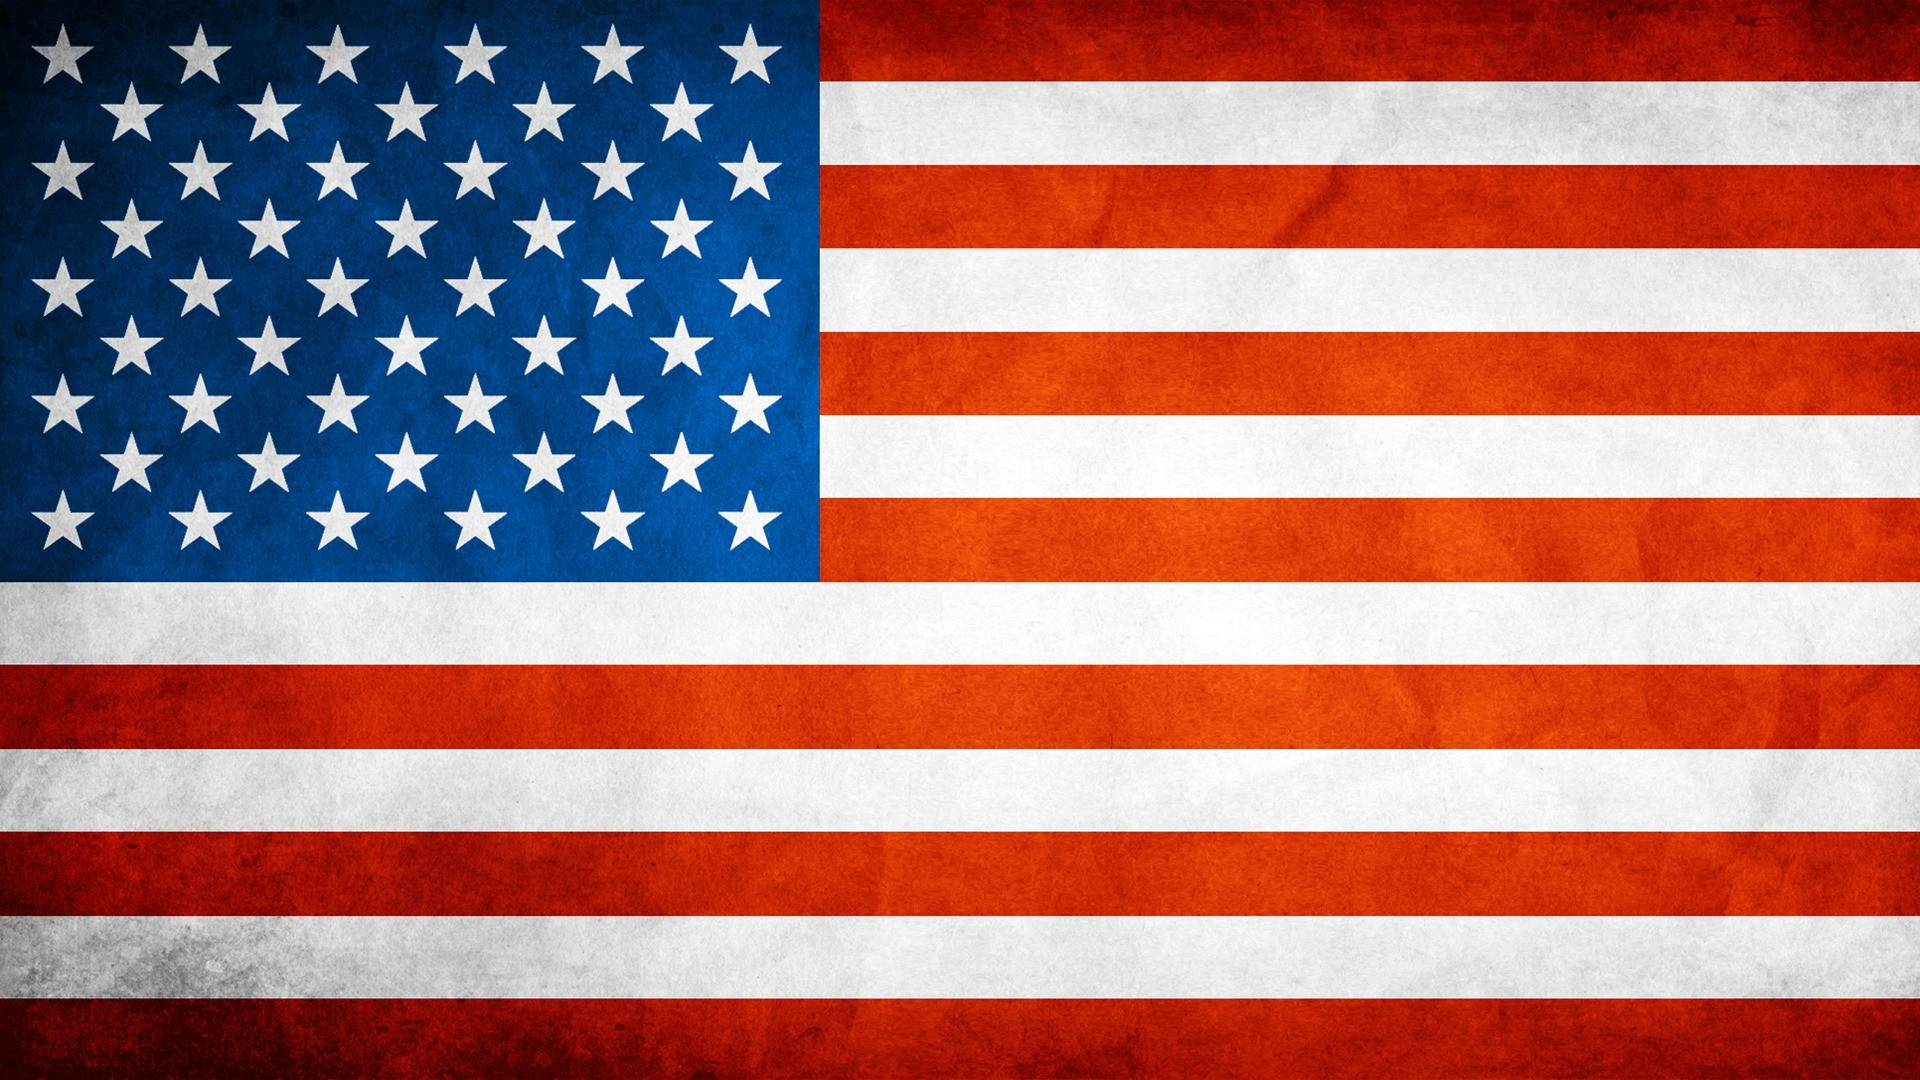 17 Jun 2011 US flag Wallpapers Download US flag Backgrounds 1920x1080